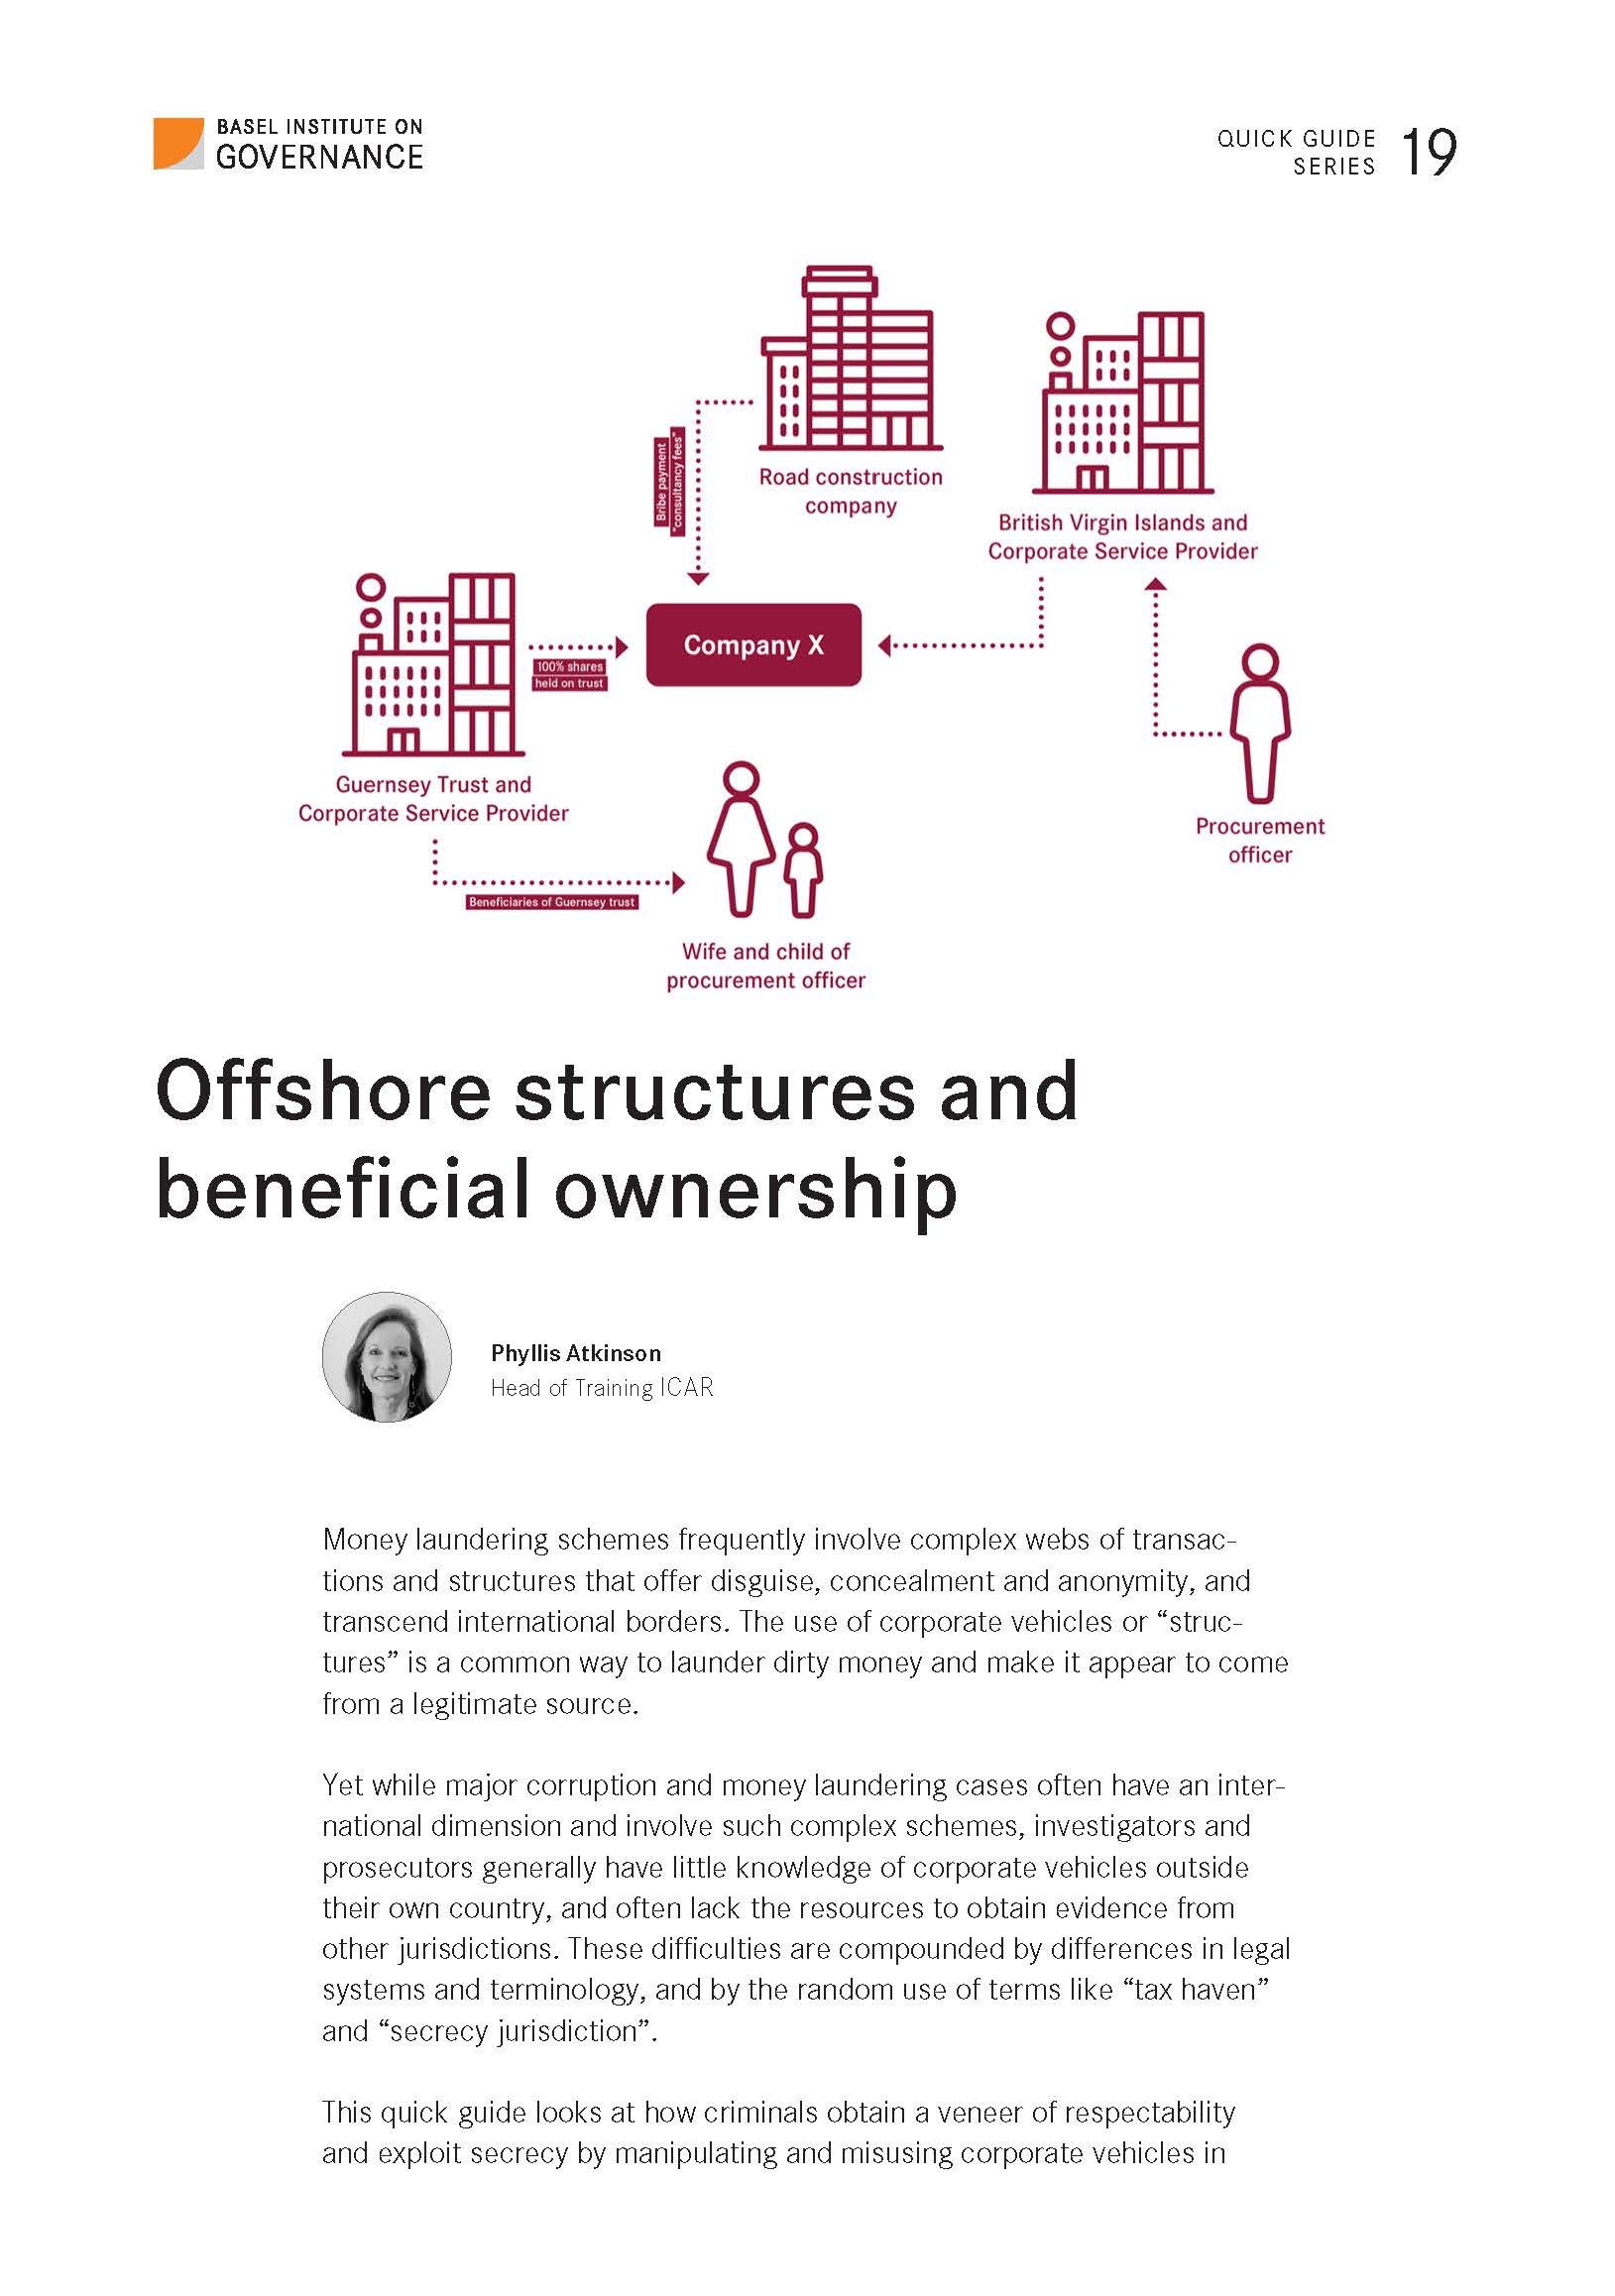 Offshore structures and beneficial ownership quick guide